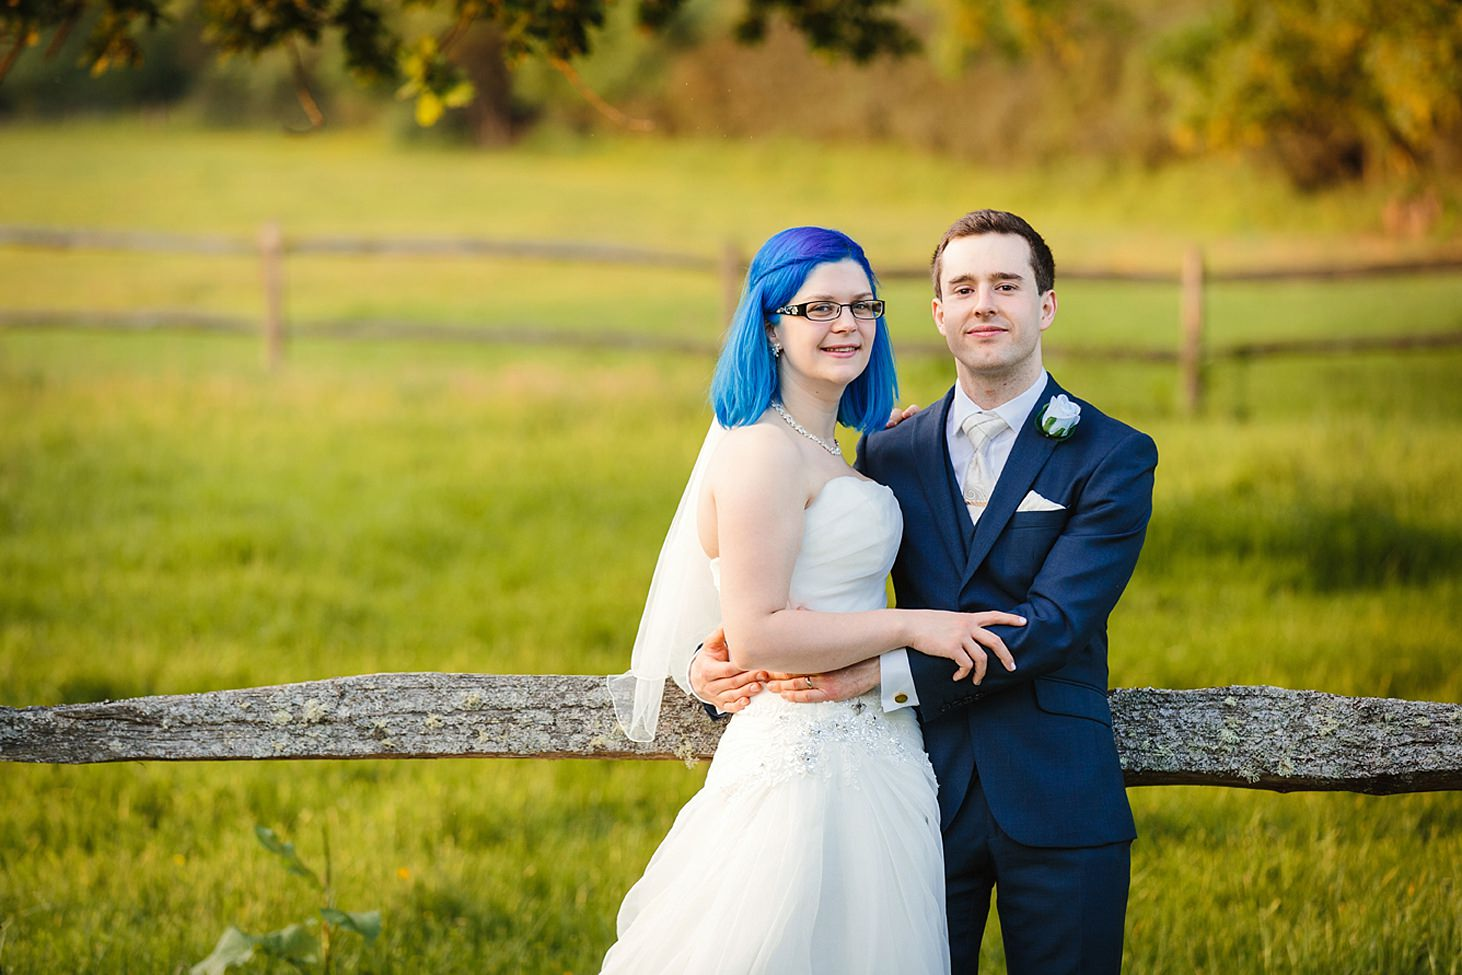 gate street barn wedding photography bride and groom together by fence